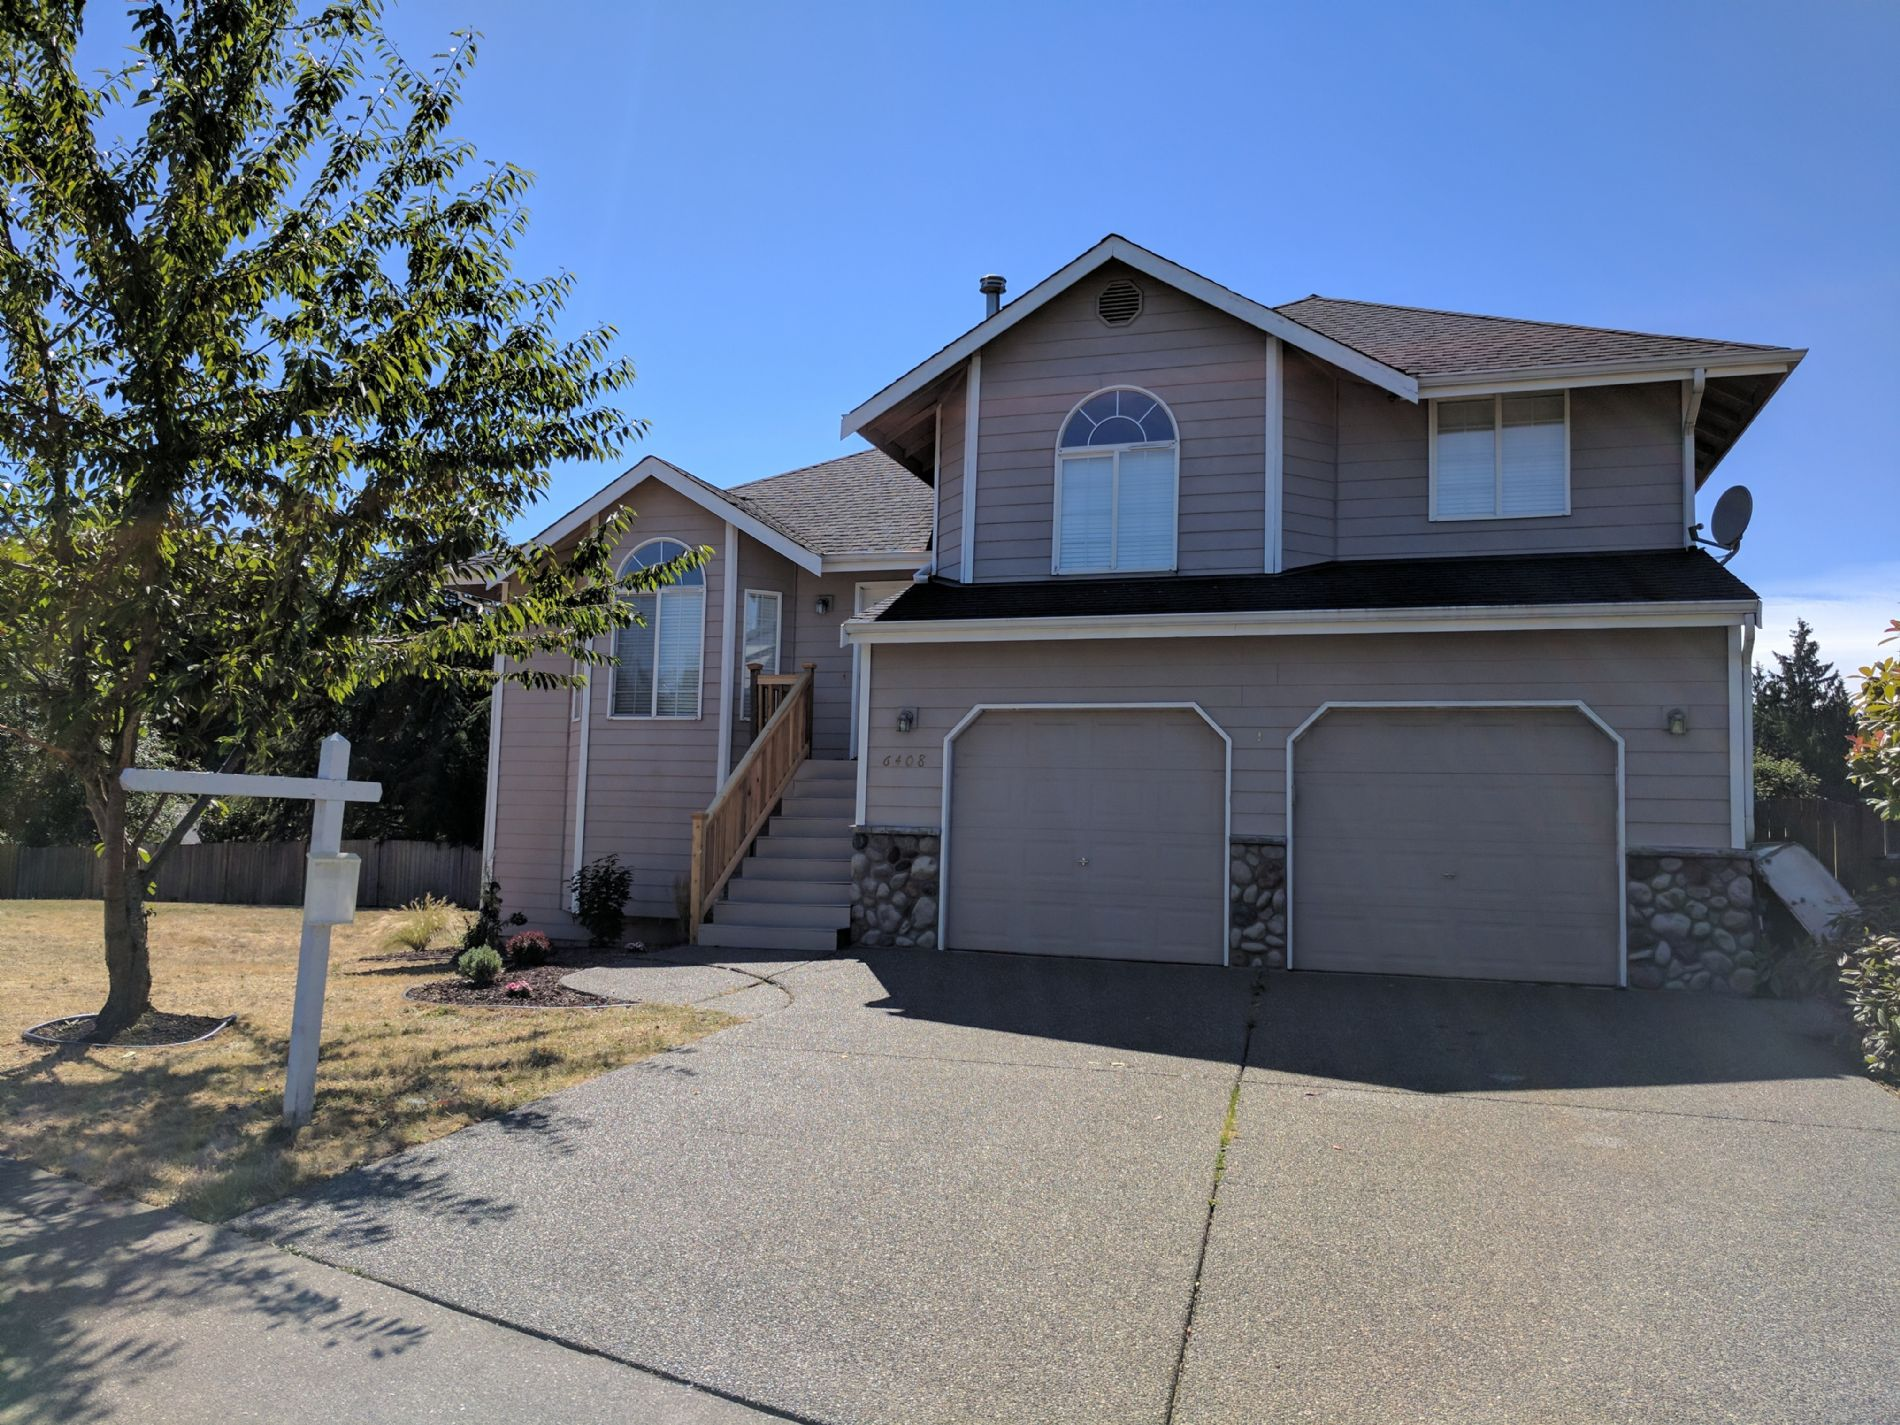 OPEN HOUSE Saturday 9 11 2 Great Location Easy Commute